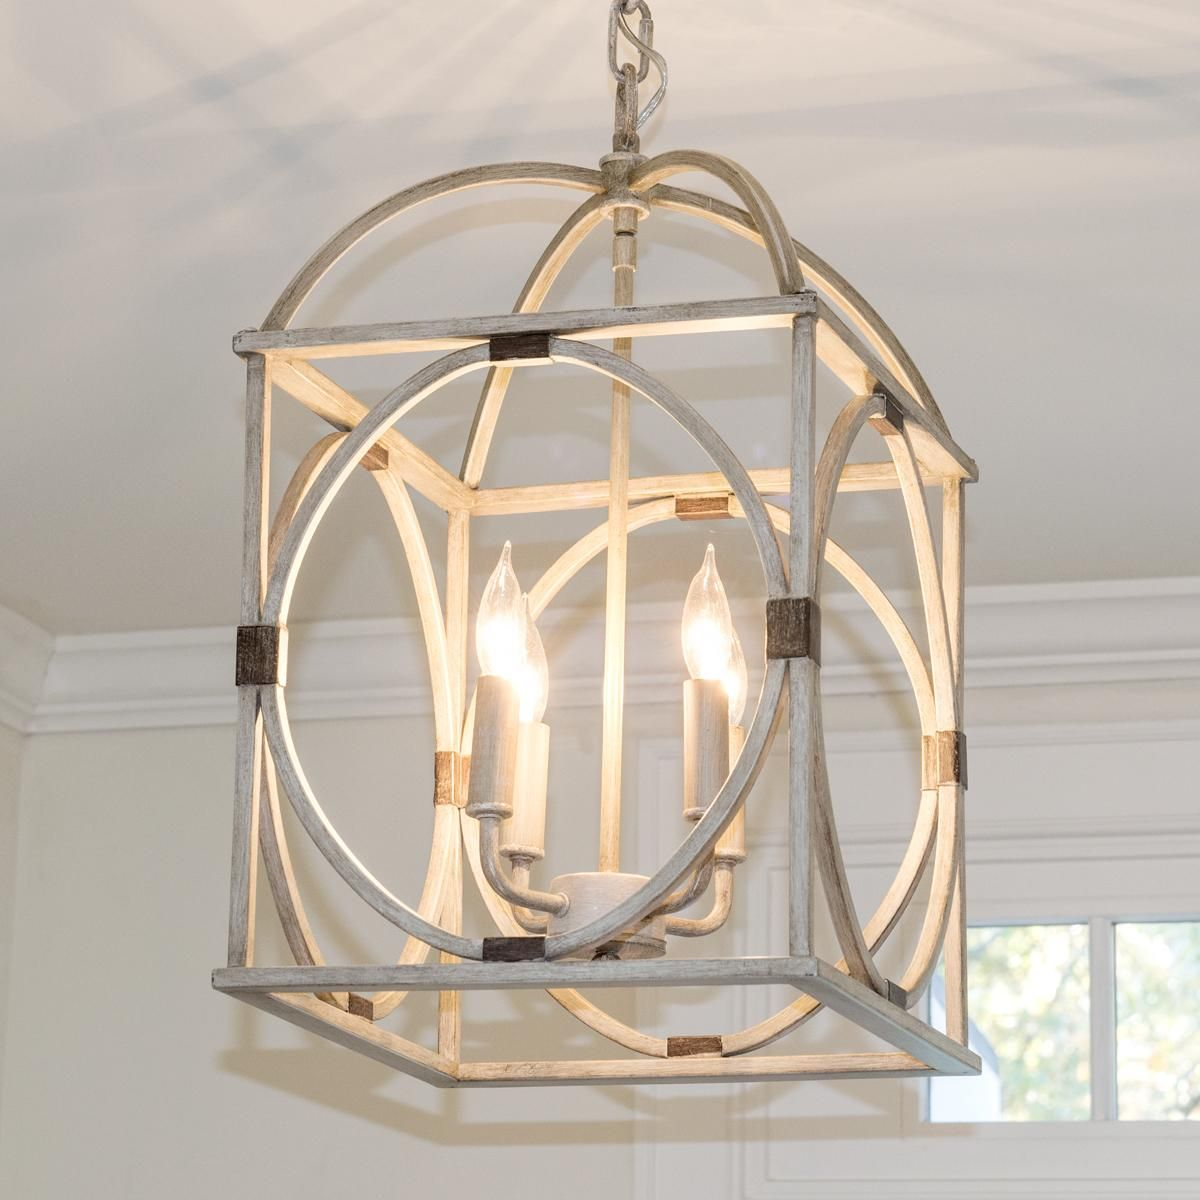 Circle Lattice Hanging Lantern Lanterns Pinterest Hanging - Hanging lanterns for kitchen